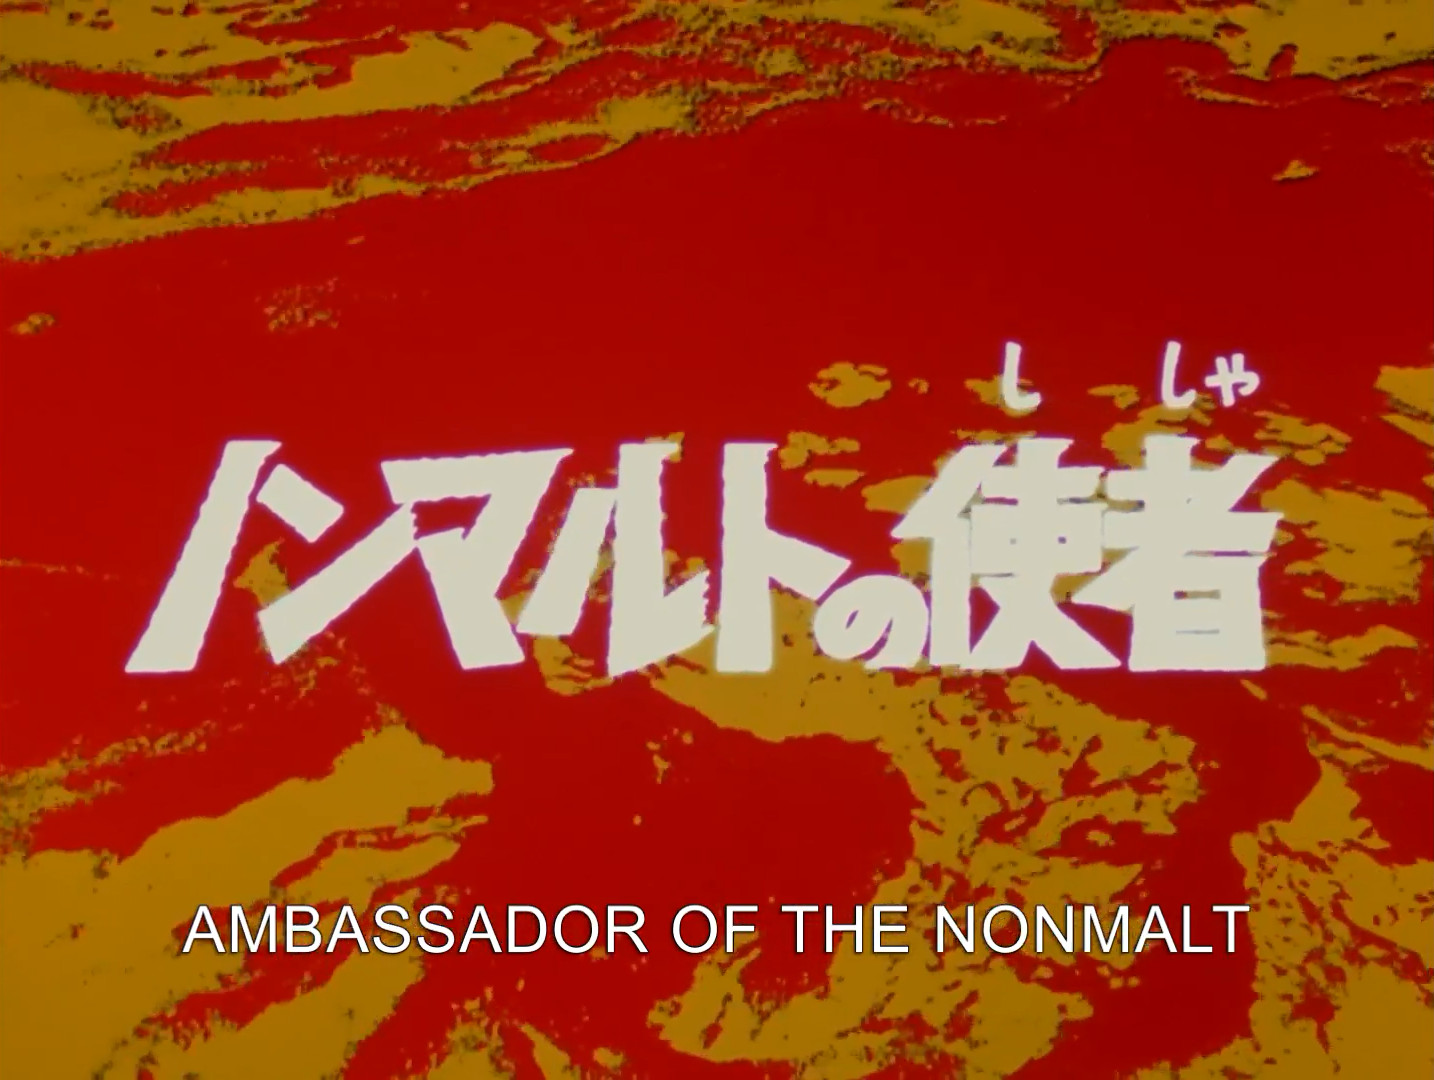 Ambassador of the Nonmalt